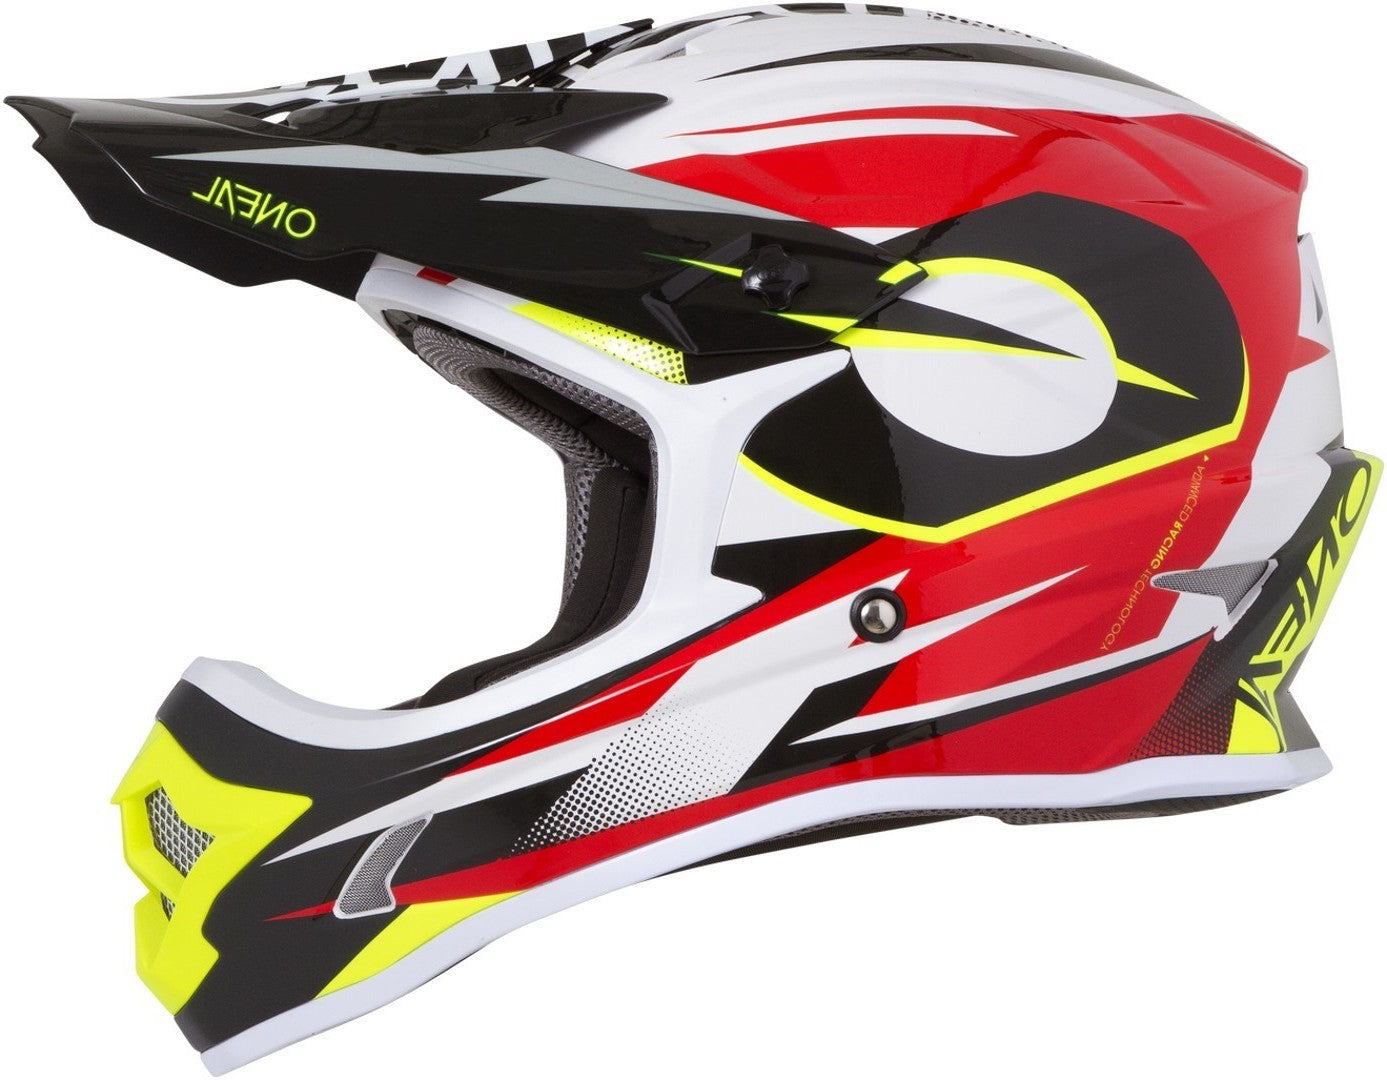 CASCO O'NEAL 3 SERIES RIFF RED